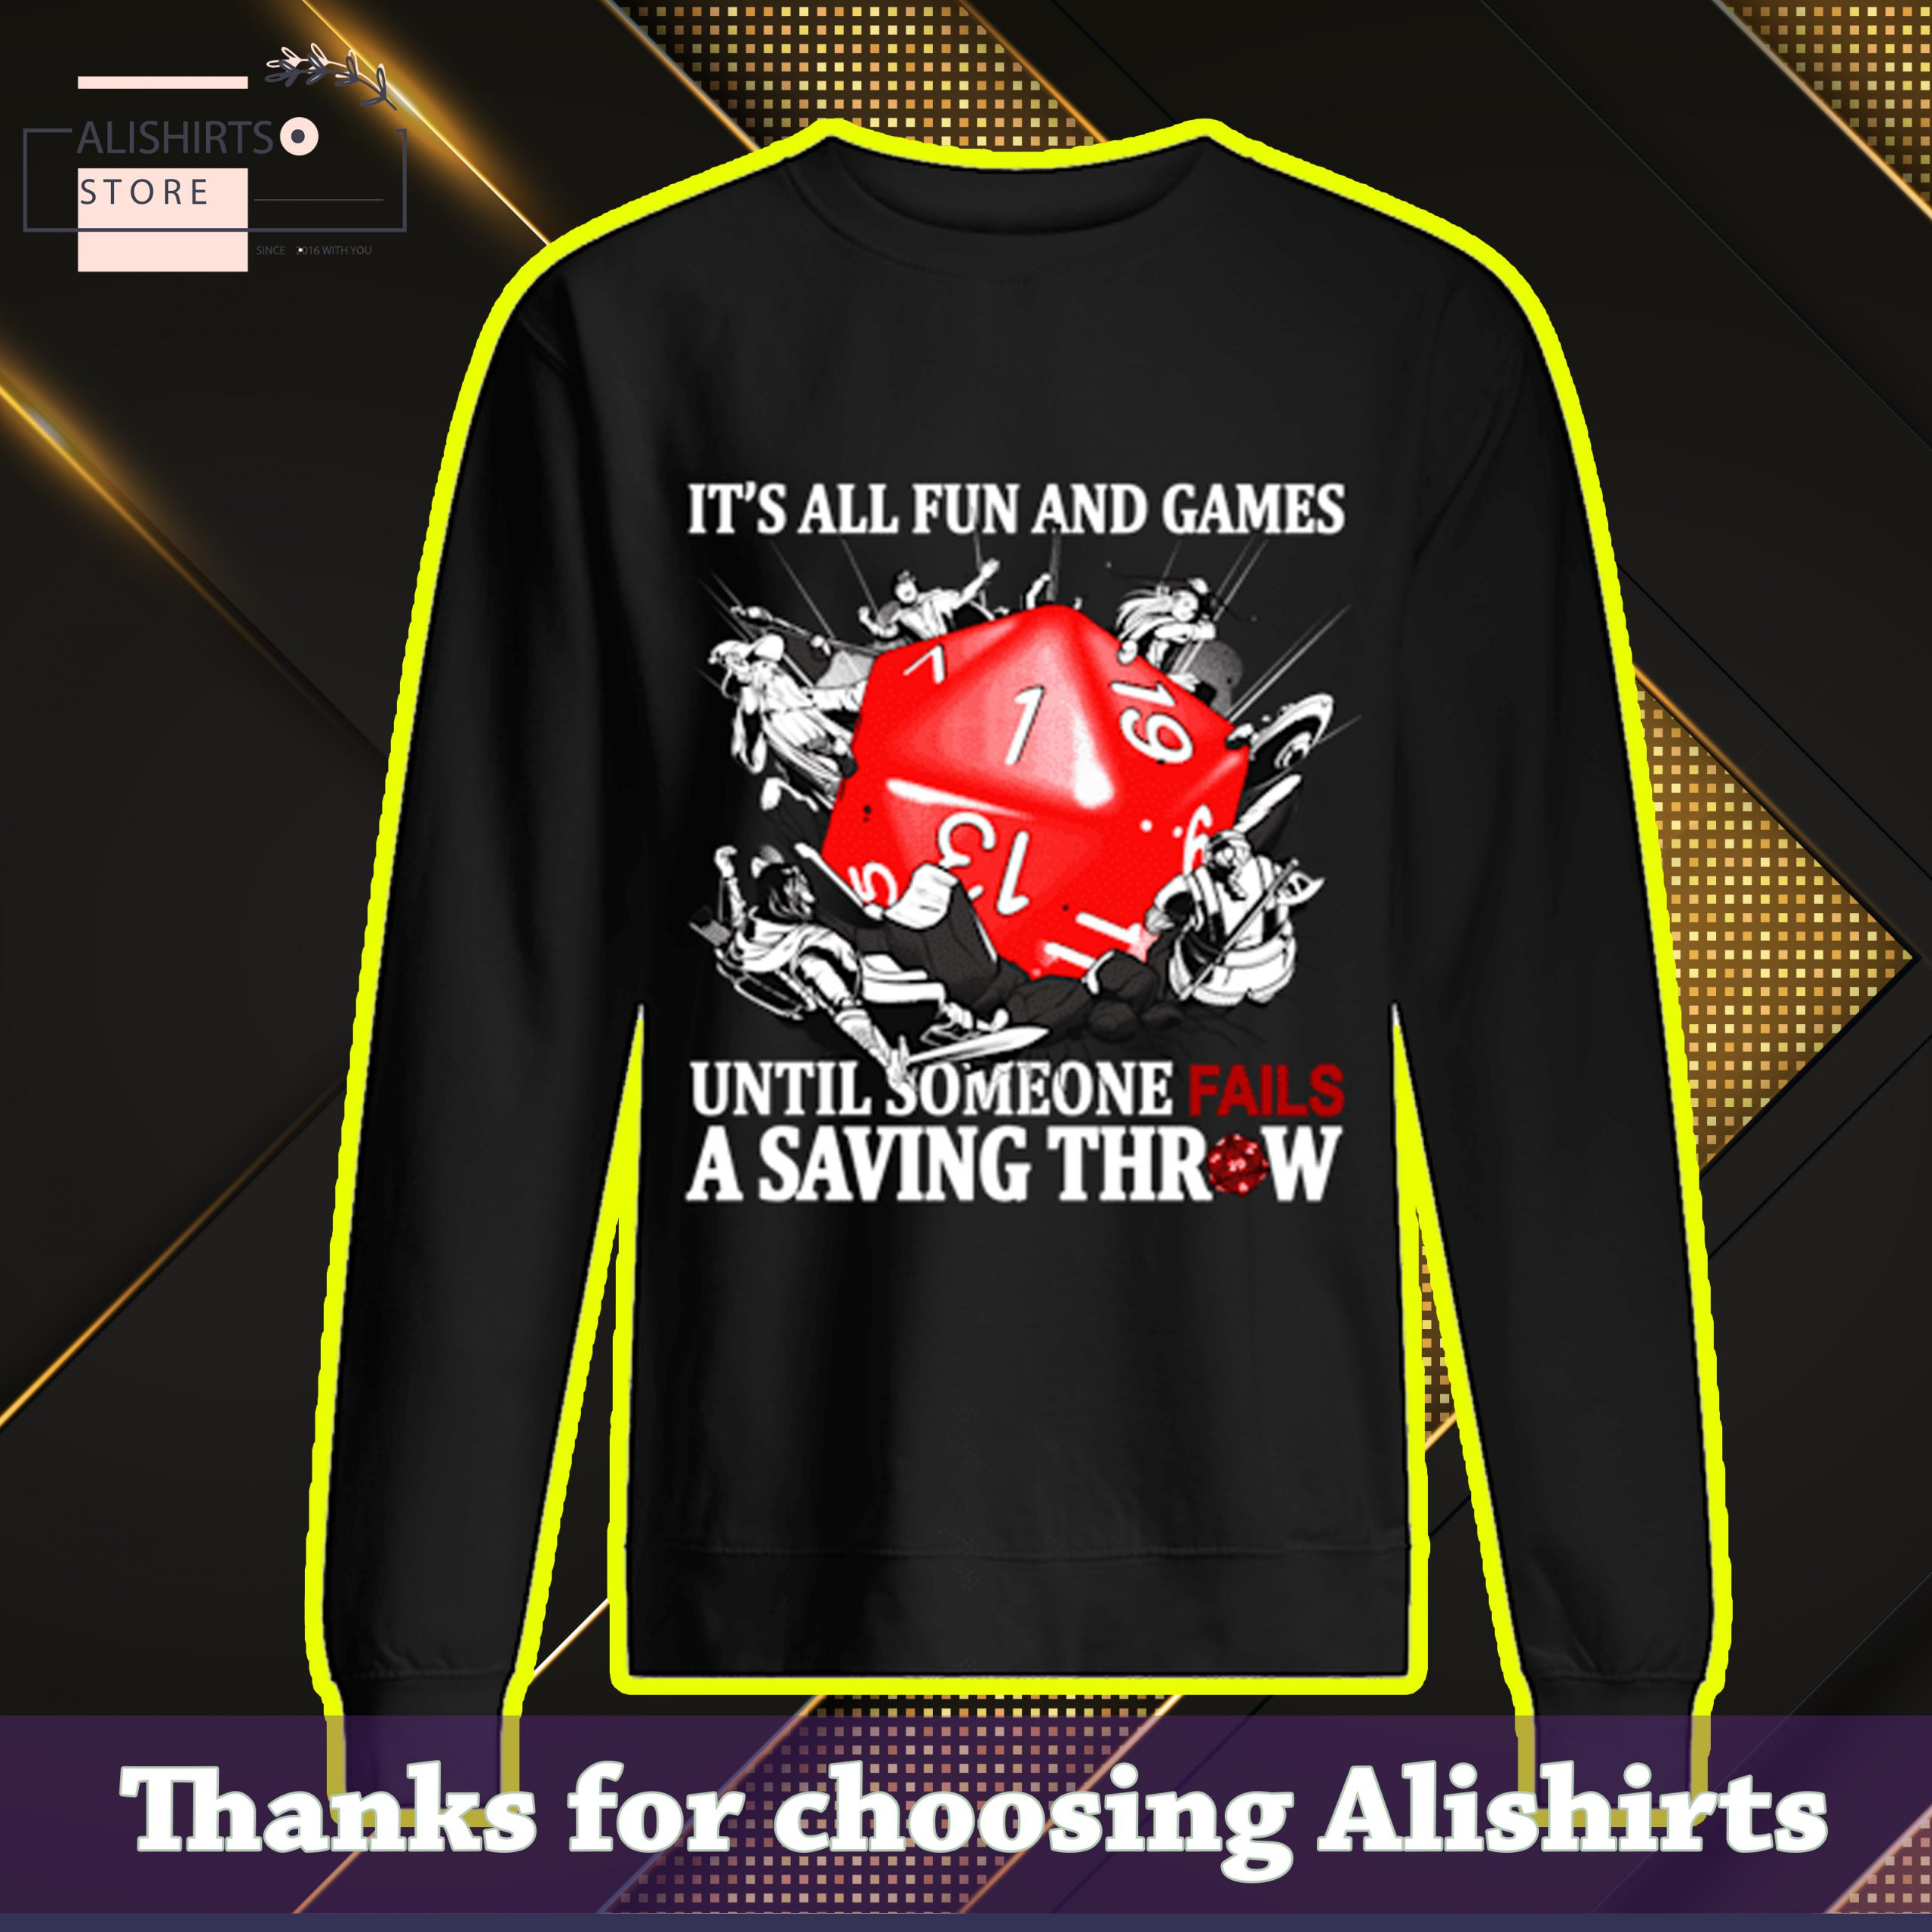 t's all fun and games until someone fails a saving throw Shirt, Hoodie, Tank Top